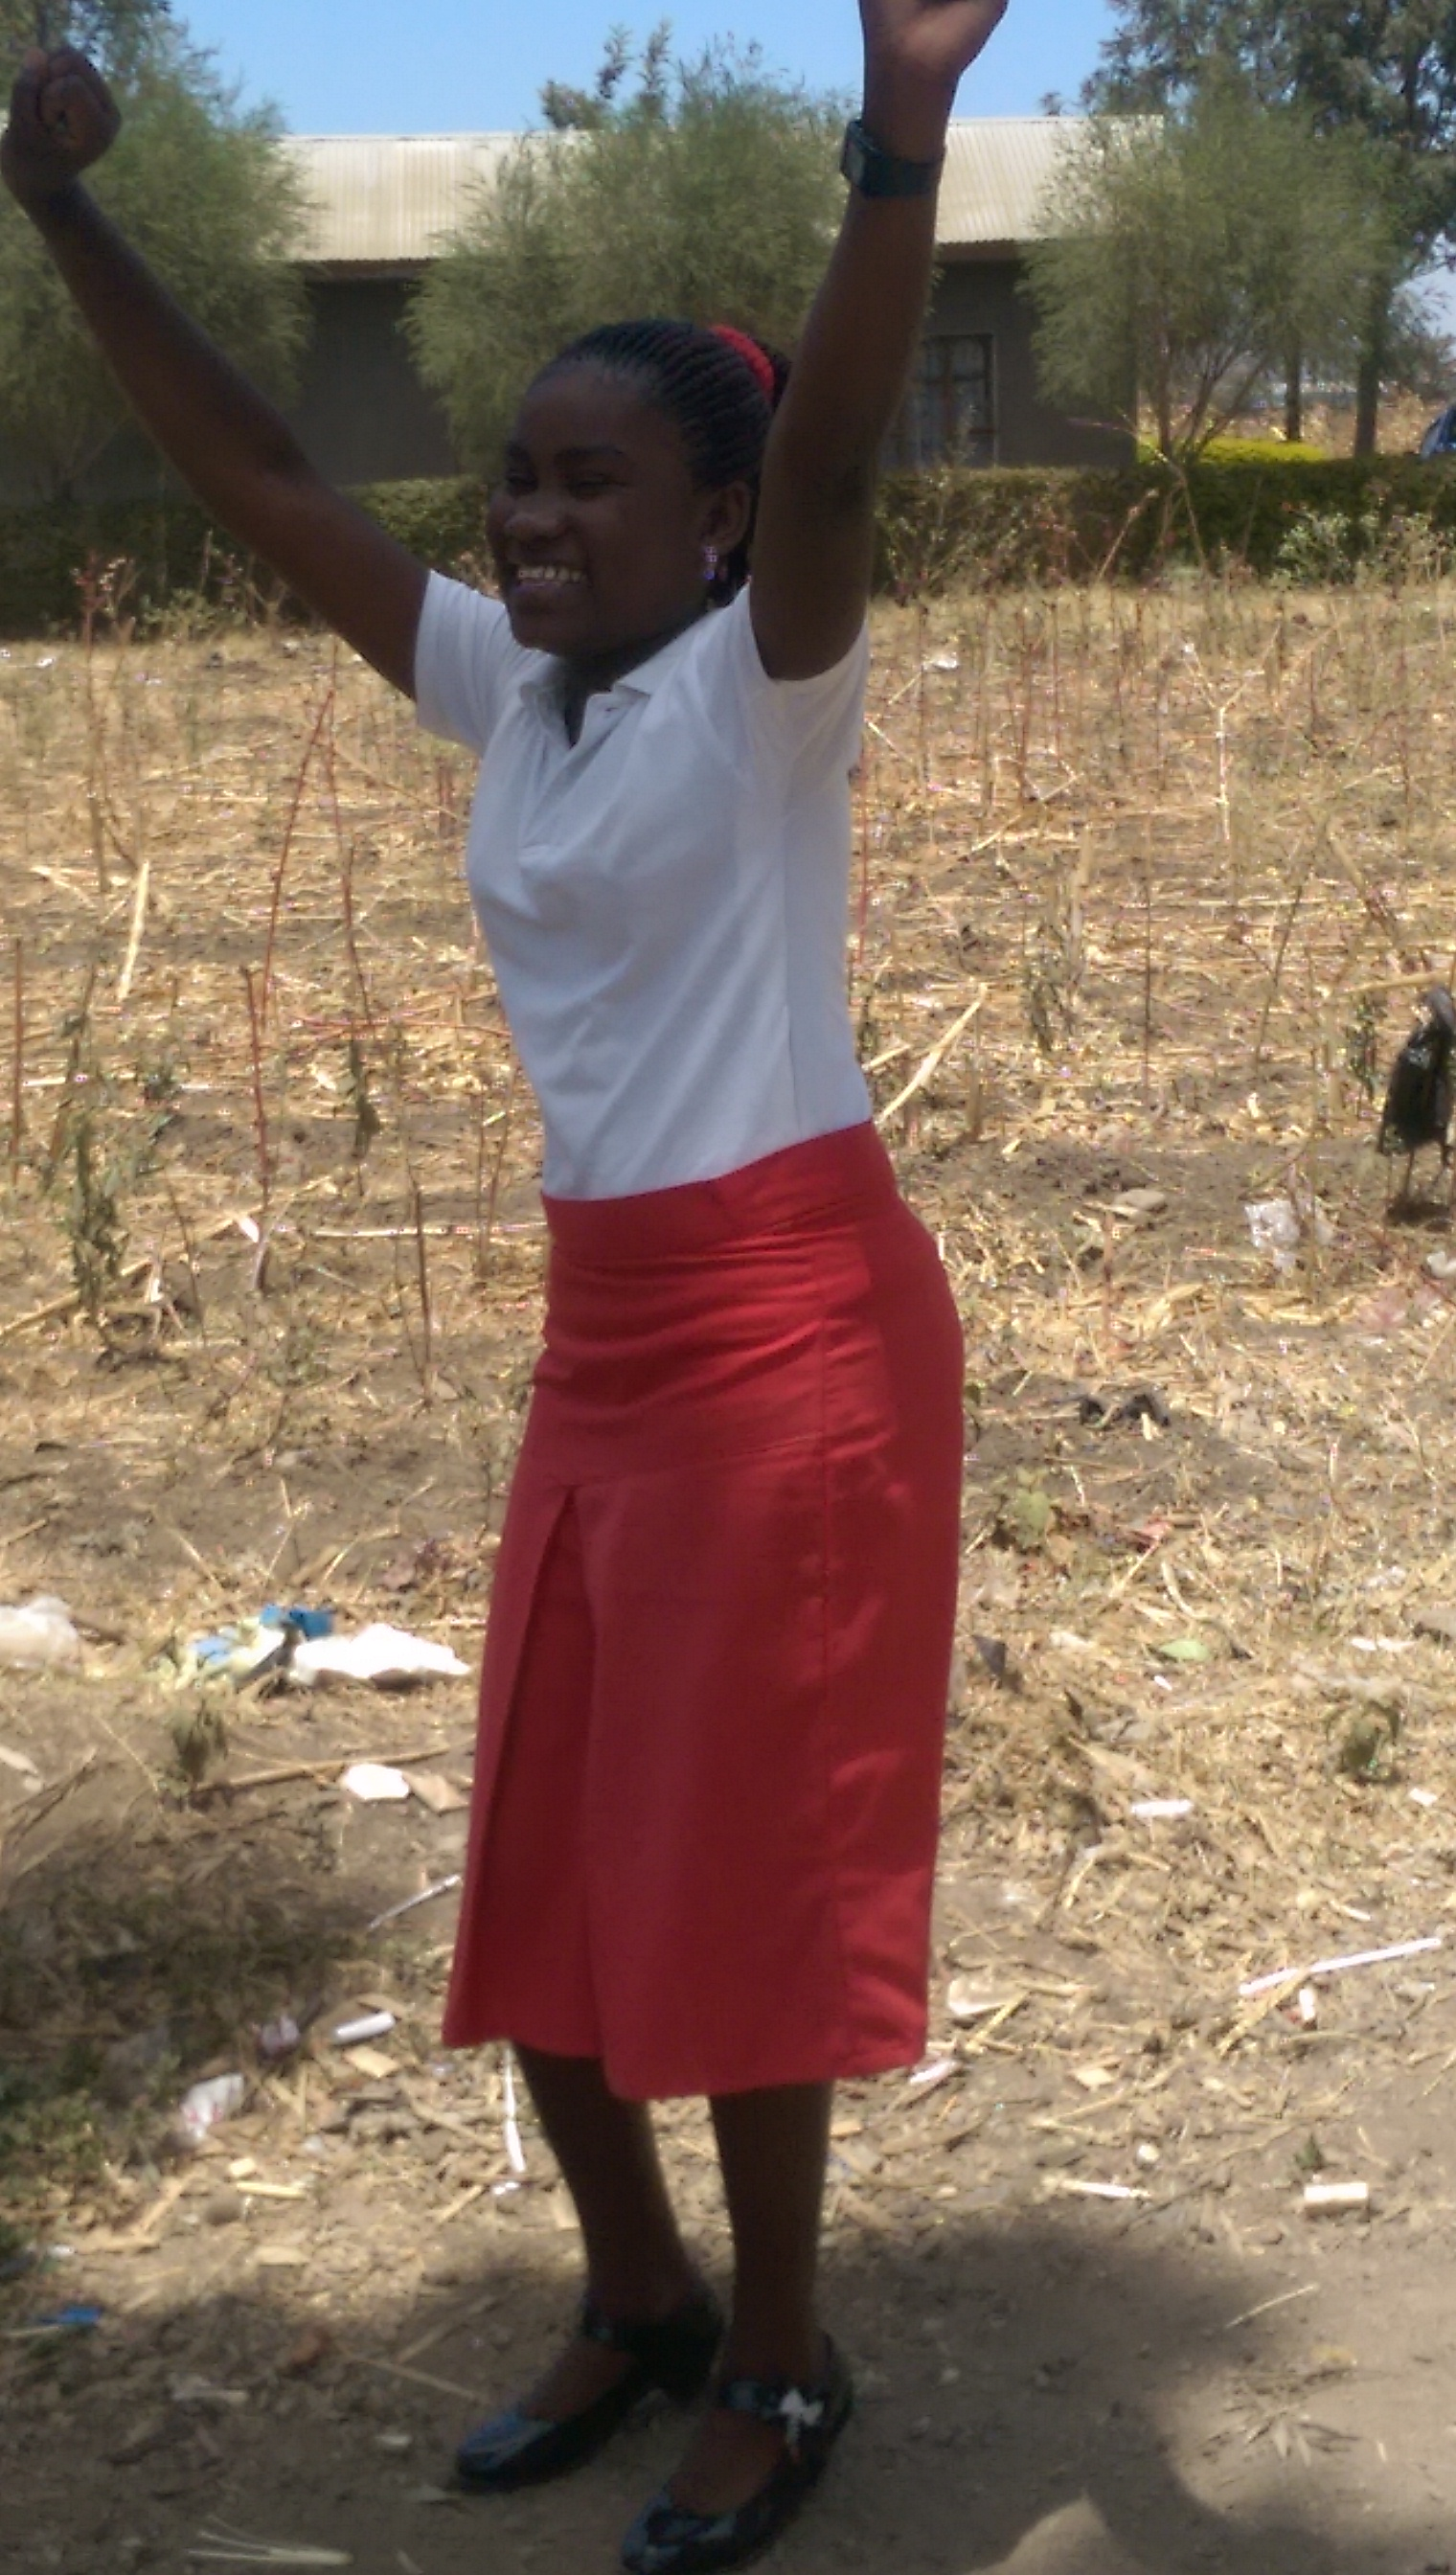 A Tanzanian girl wearing a red skirt and a white blouse, in a celebratory pose with her arms in the air.